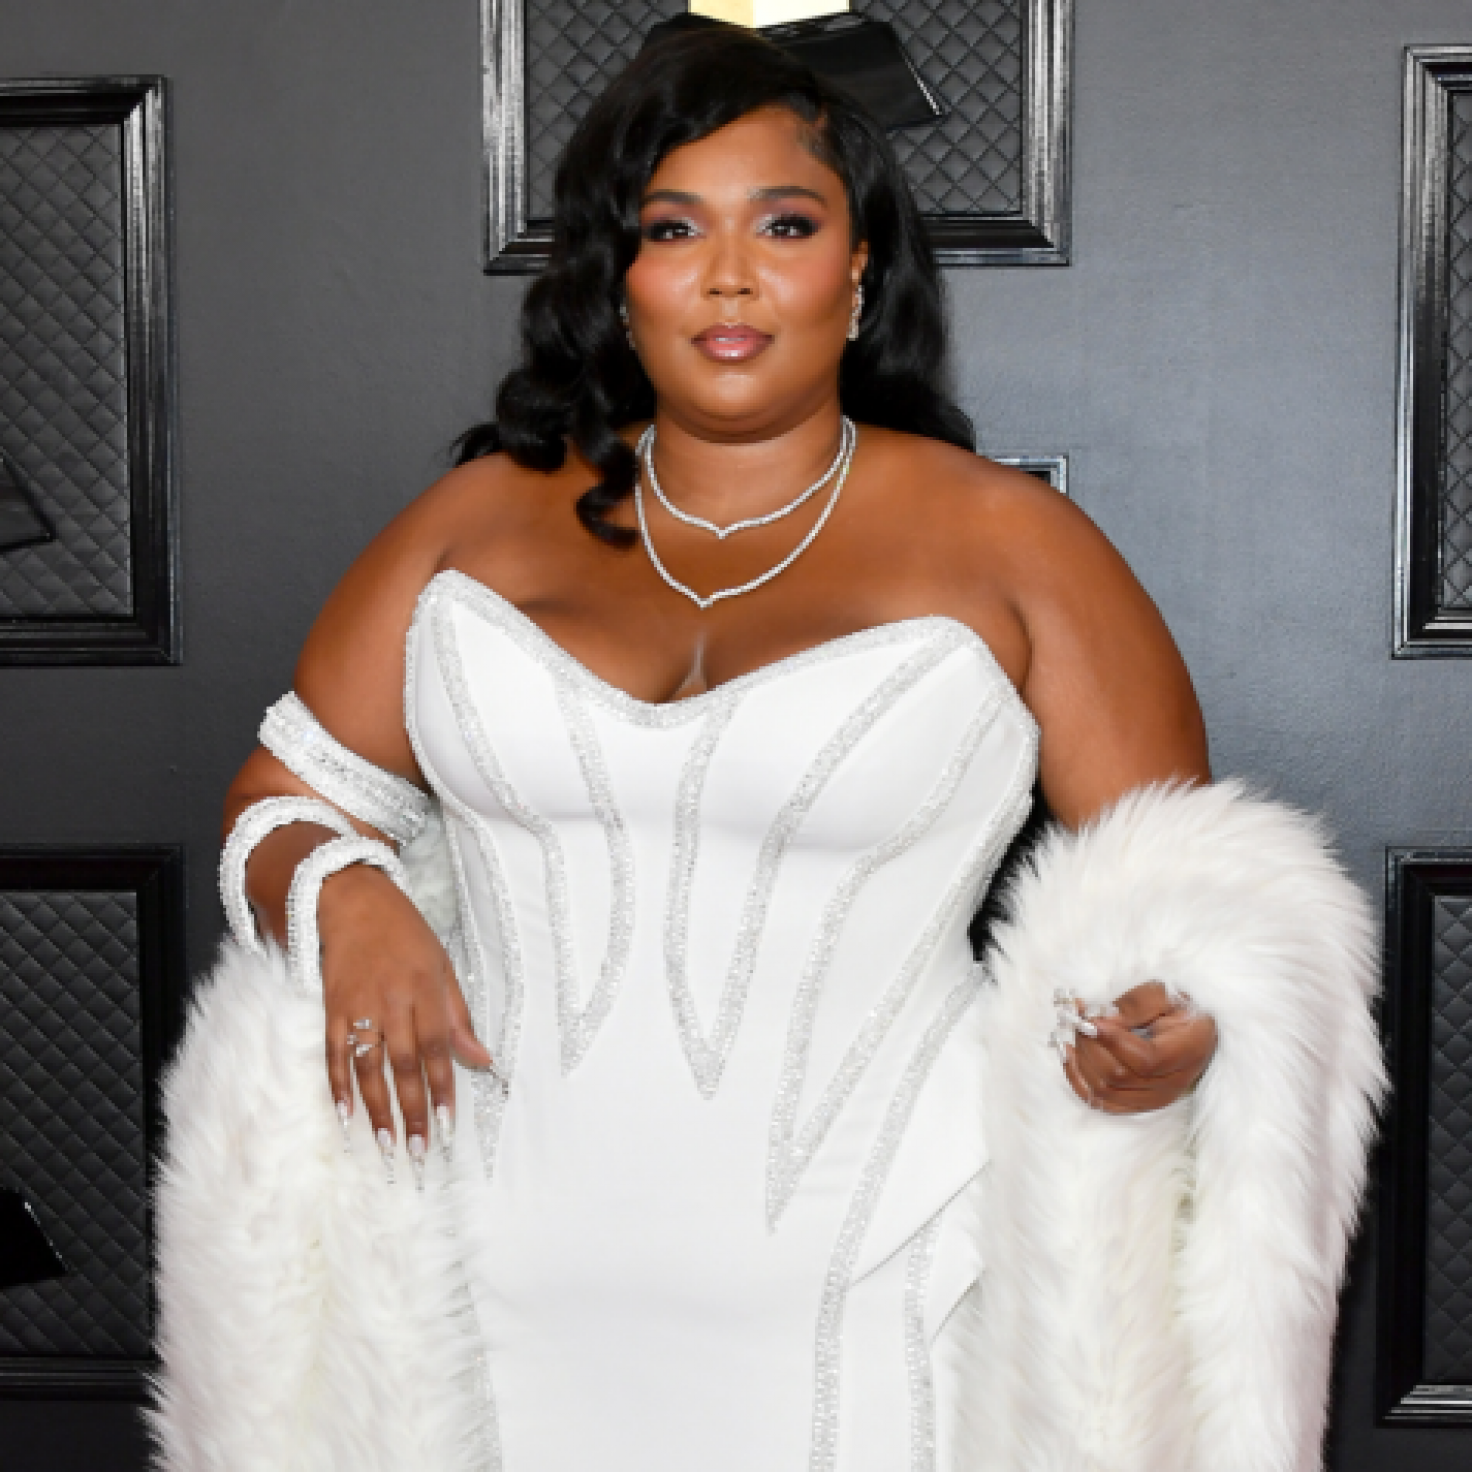 Lizzo Has The Best Nail Designs and Here's Proof